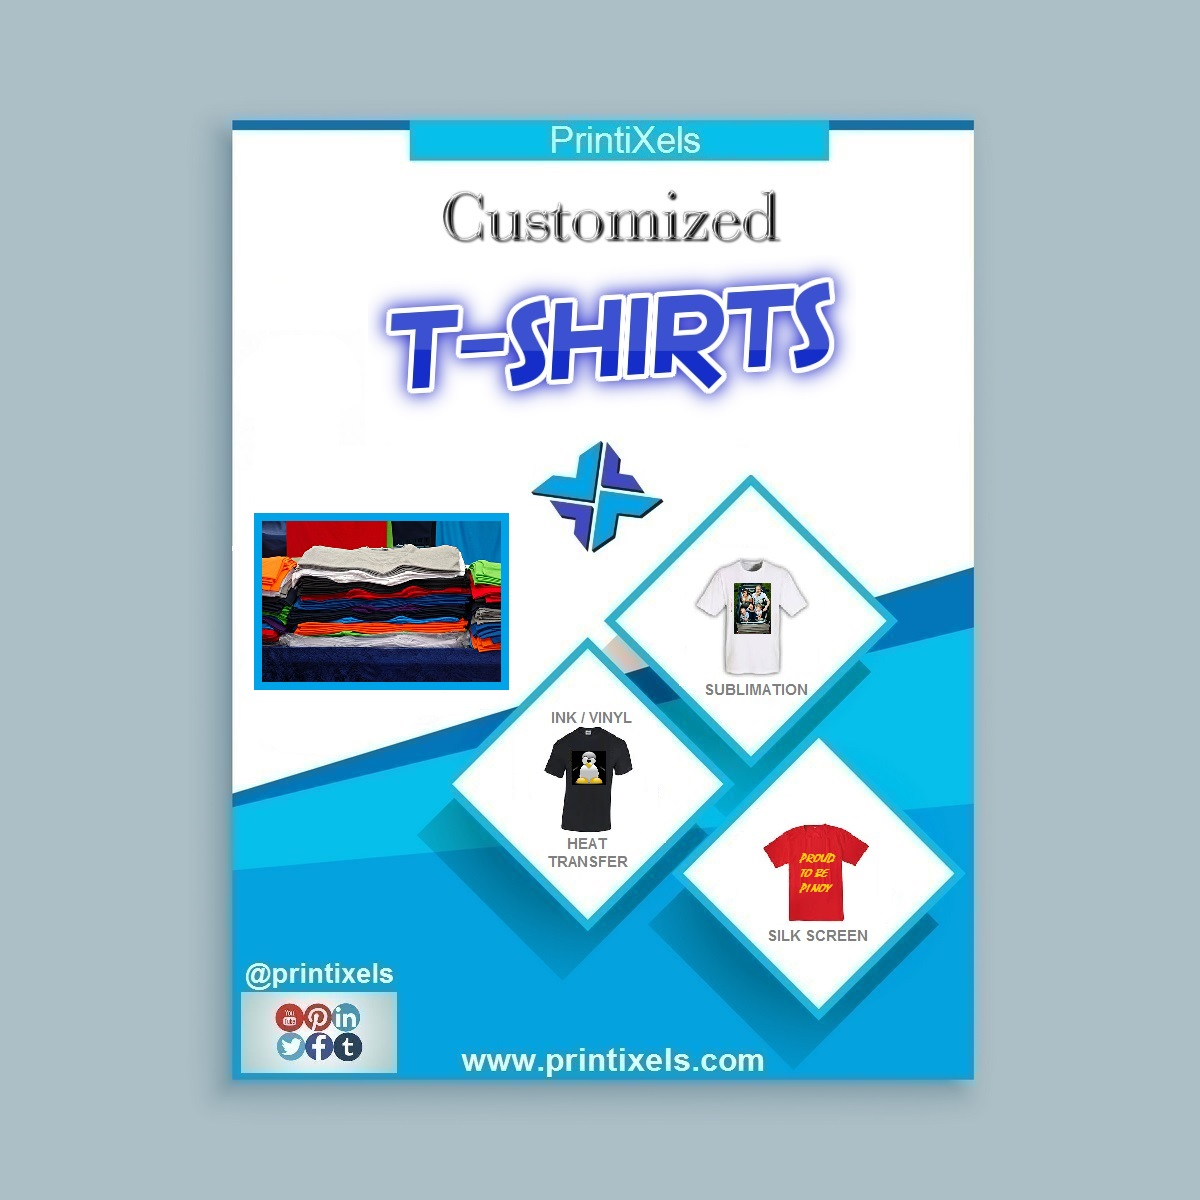 Customized T-Shirt Printing Services